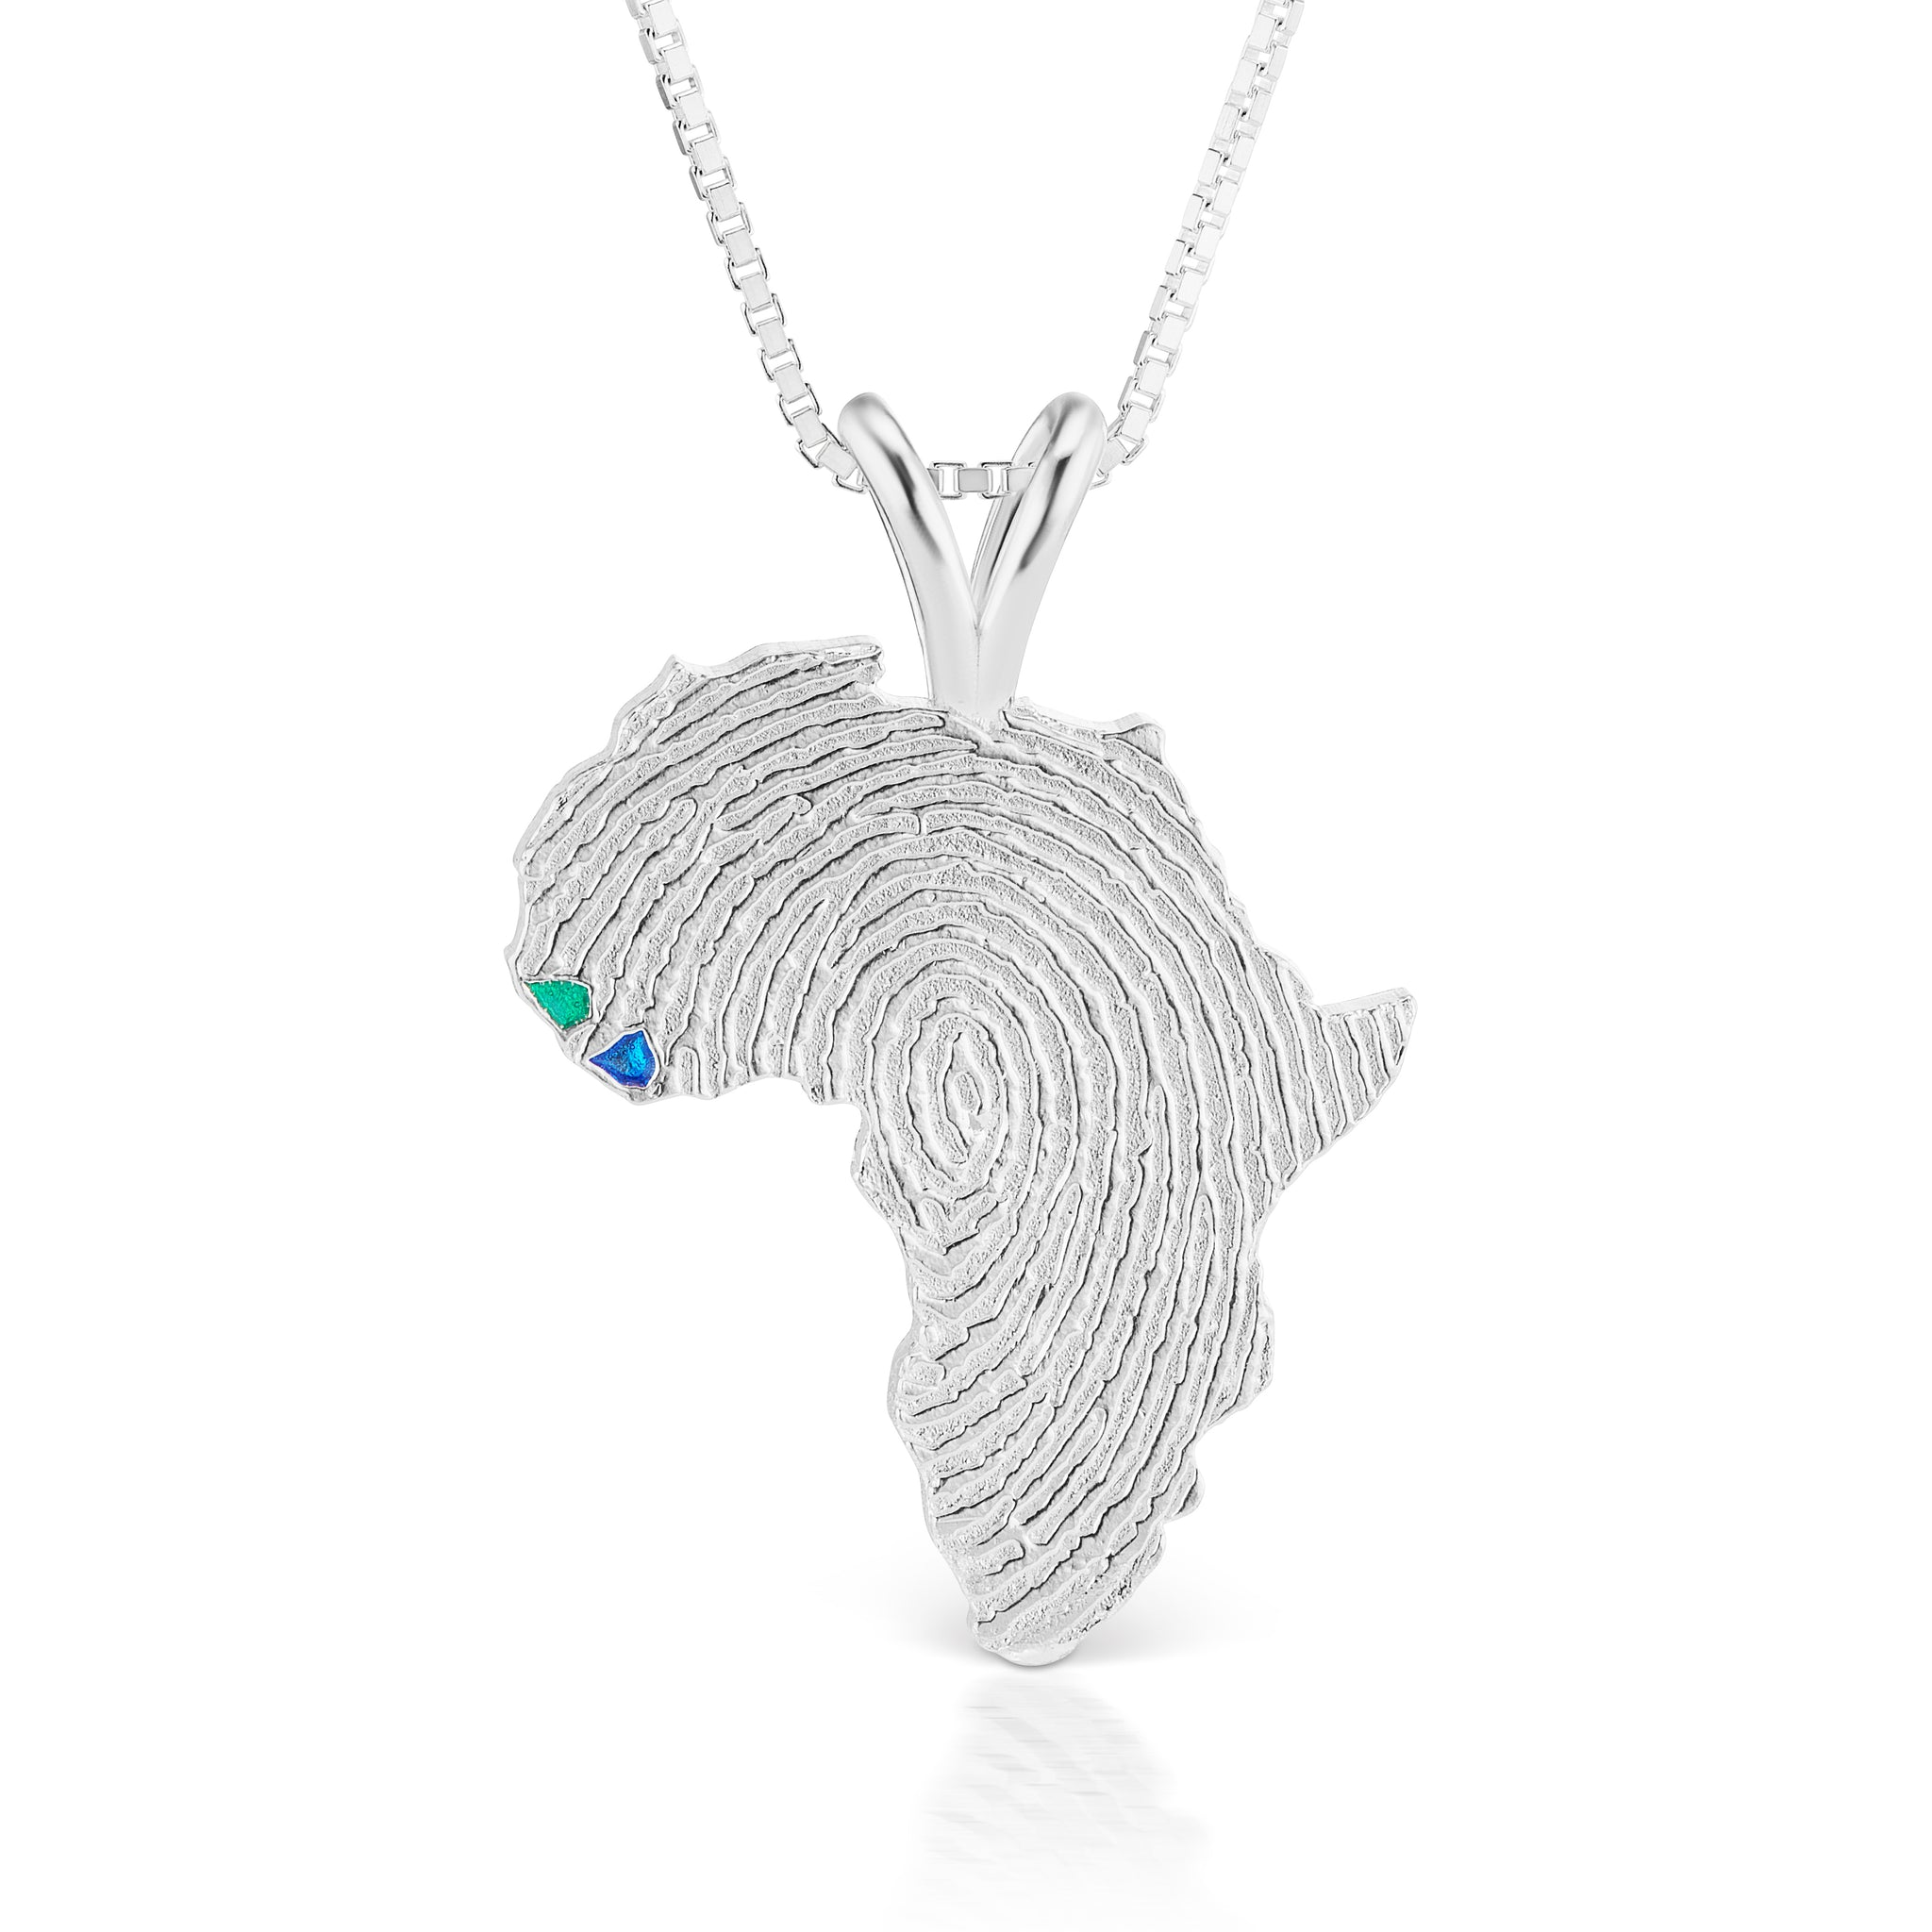 Guinea-Bissau and Sierra Leone Heirloom Pendant - Sterling Silver 34mm